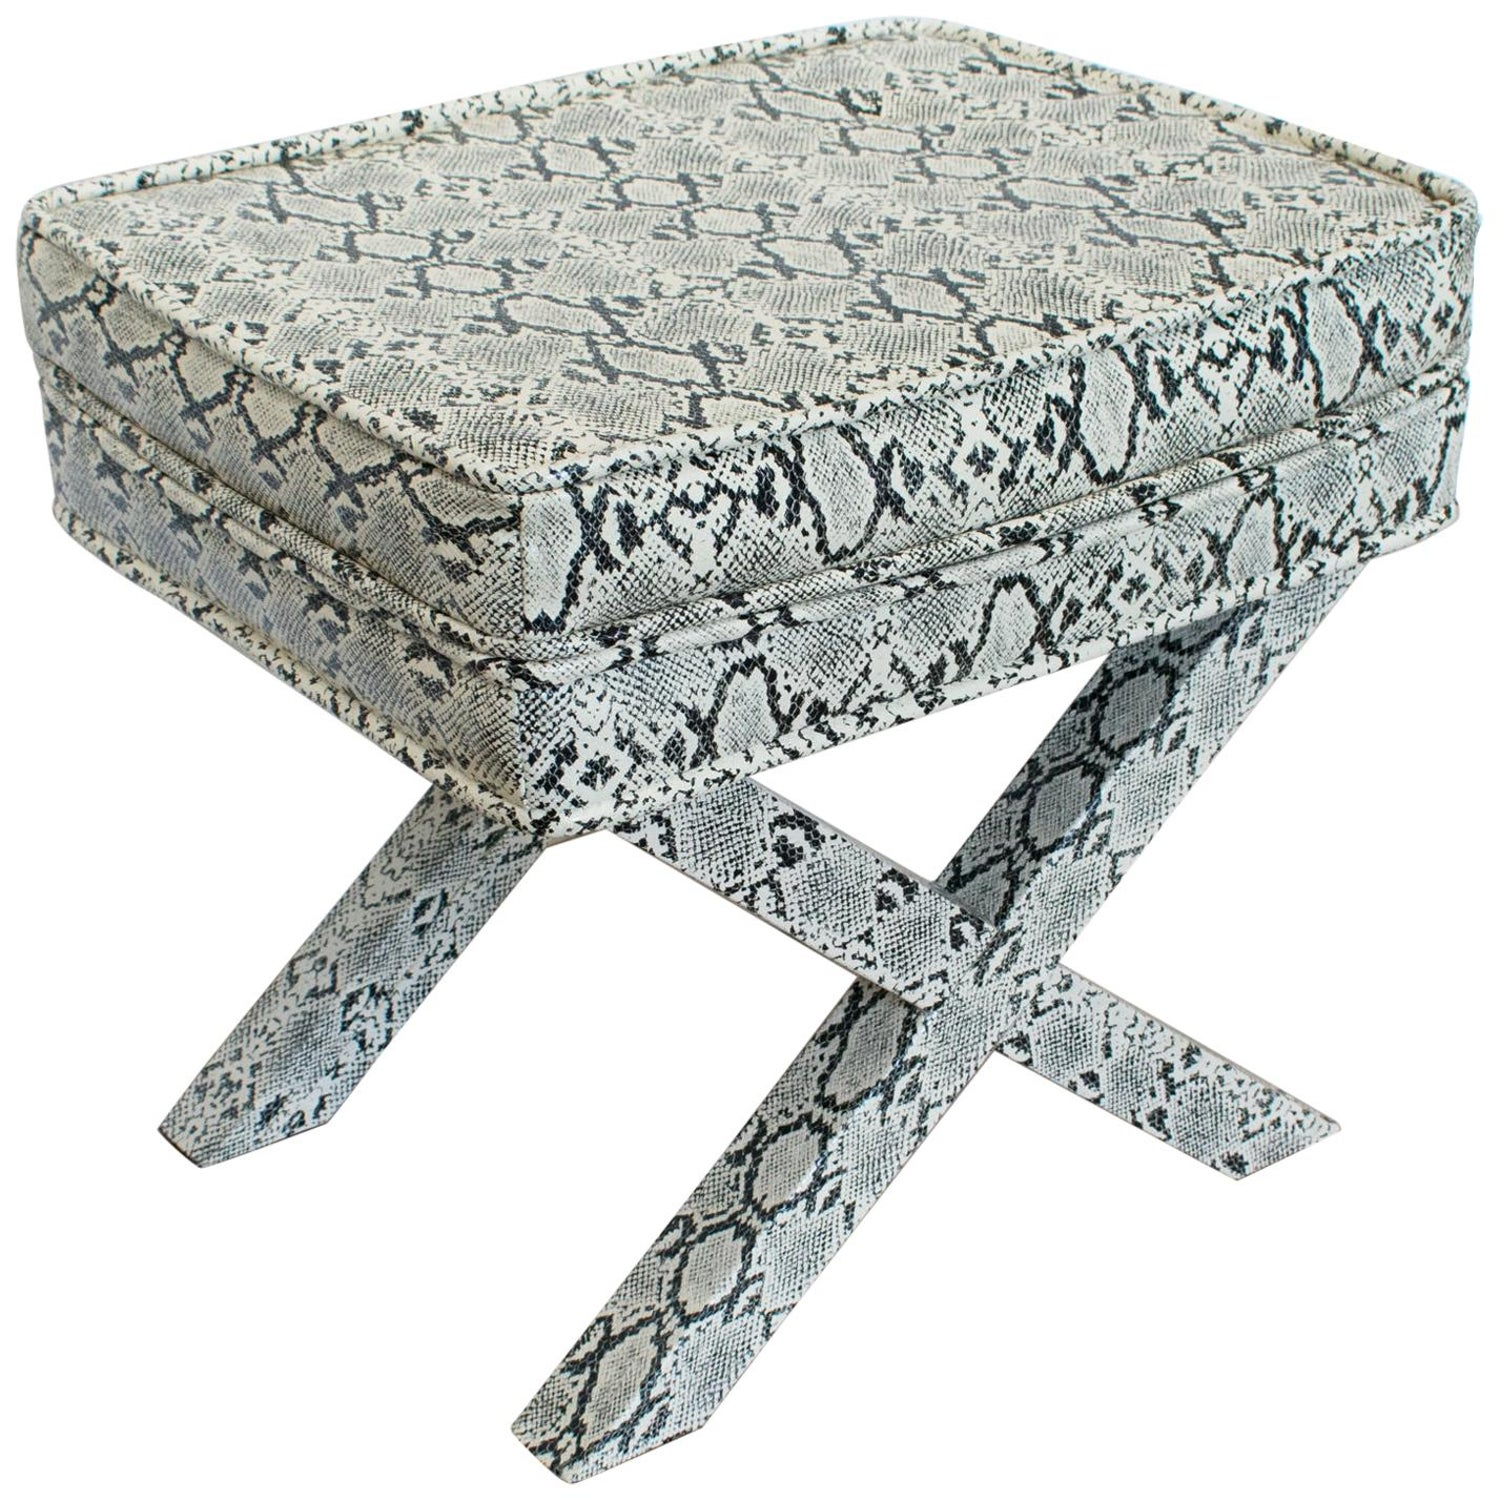 Awesome Billy Baldwin Style Python Leather X Bench Ottoman Footstool Machost Co Dining Chair Design Ideas Machostcouk